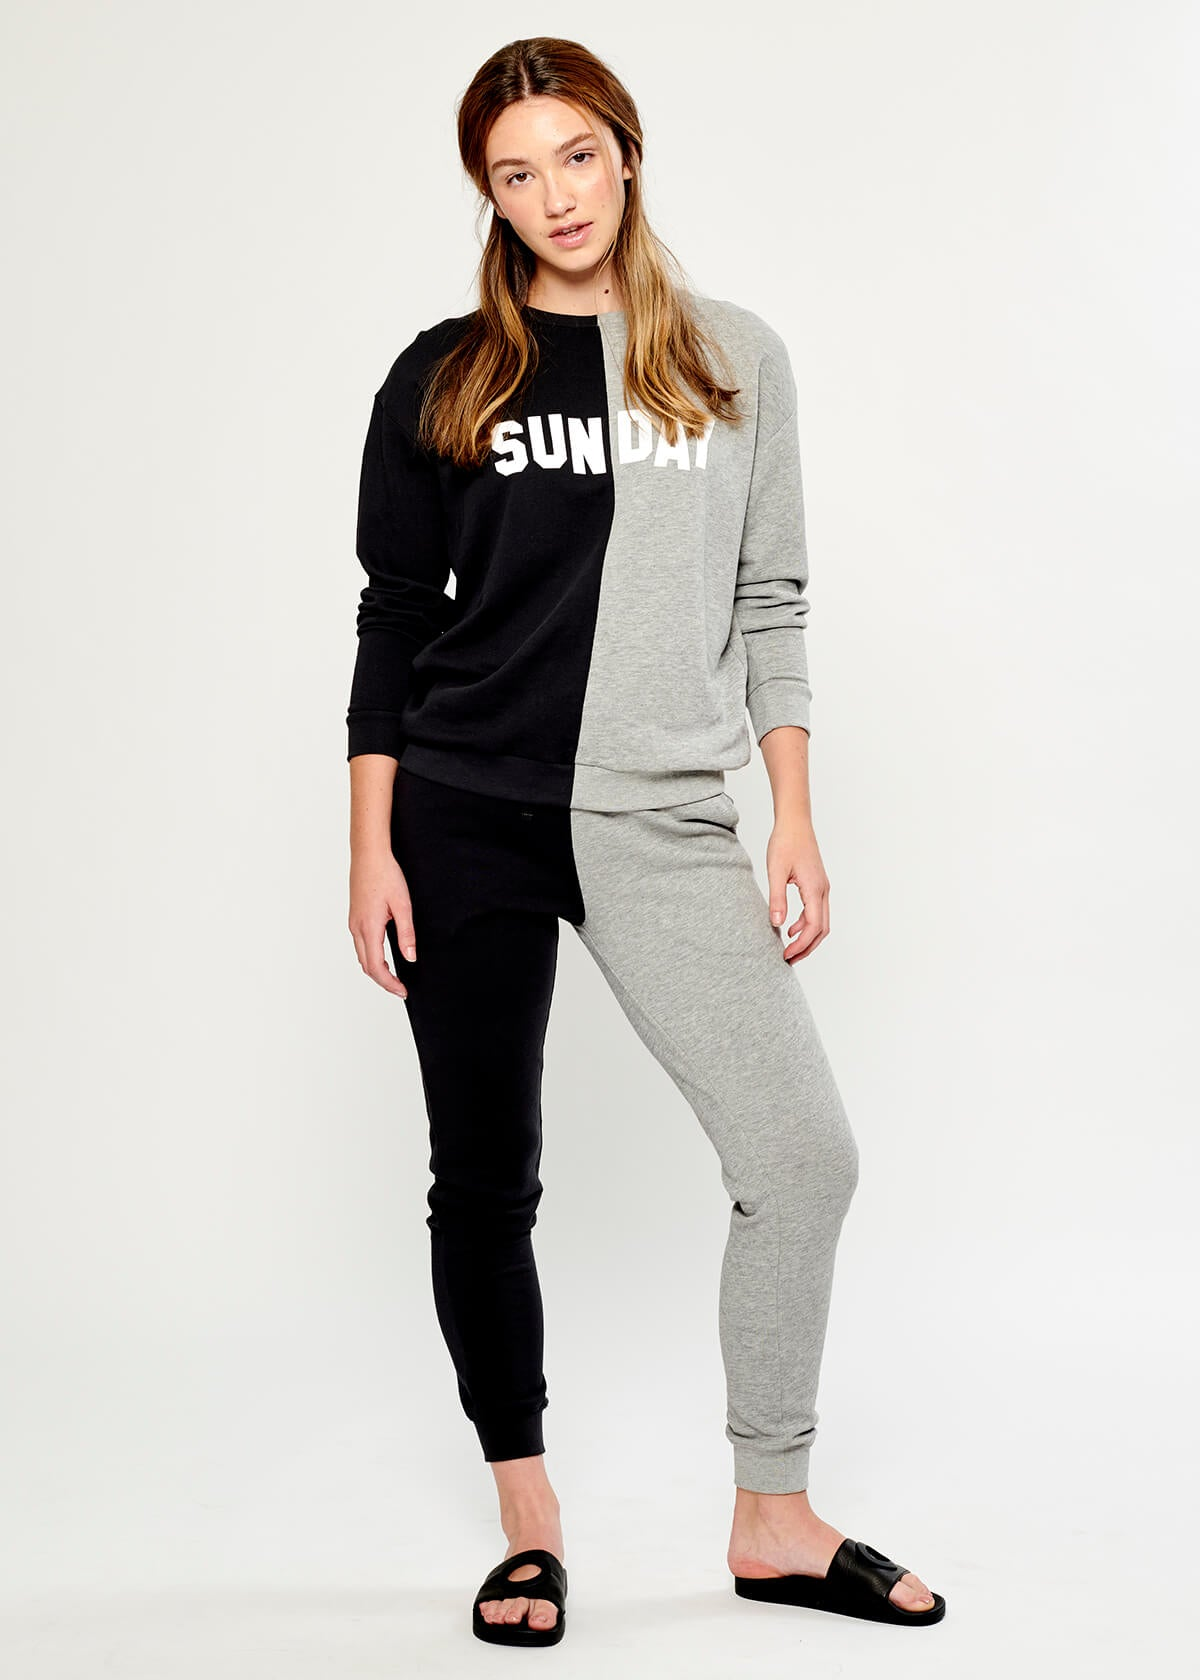 Lucy - Sweatpant - Bi Color - Black and Gray